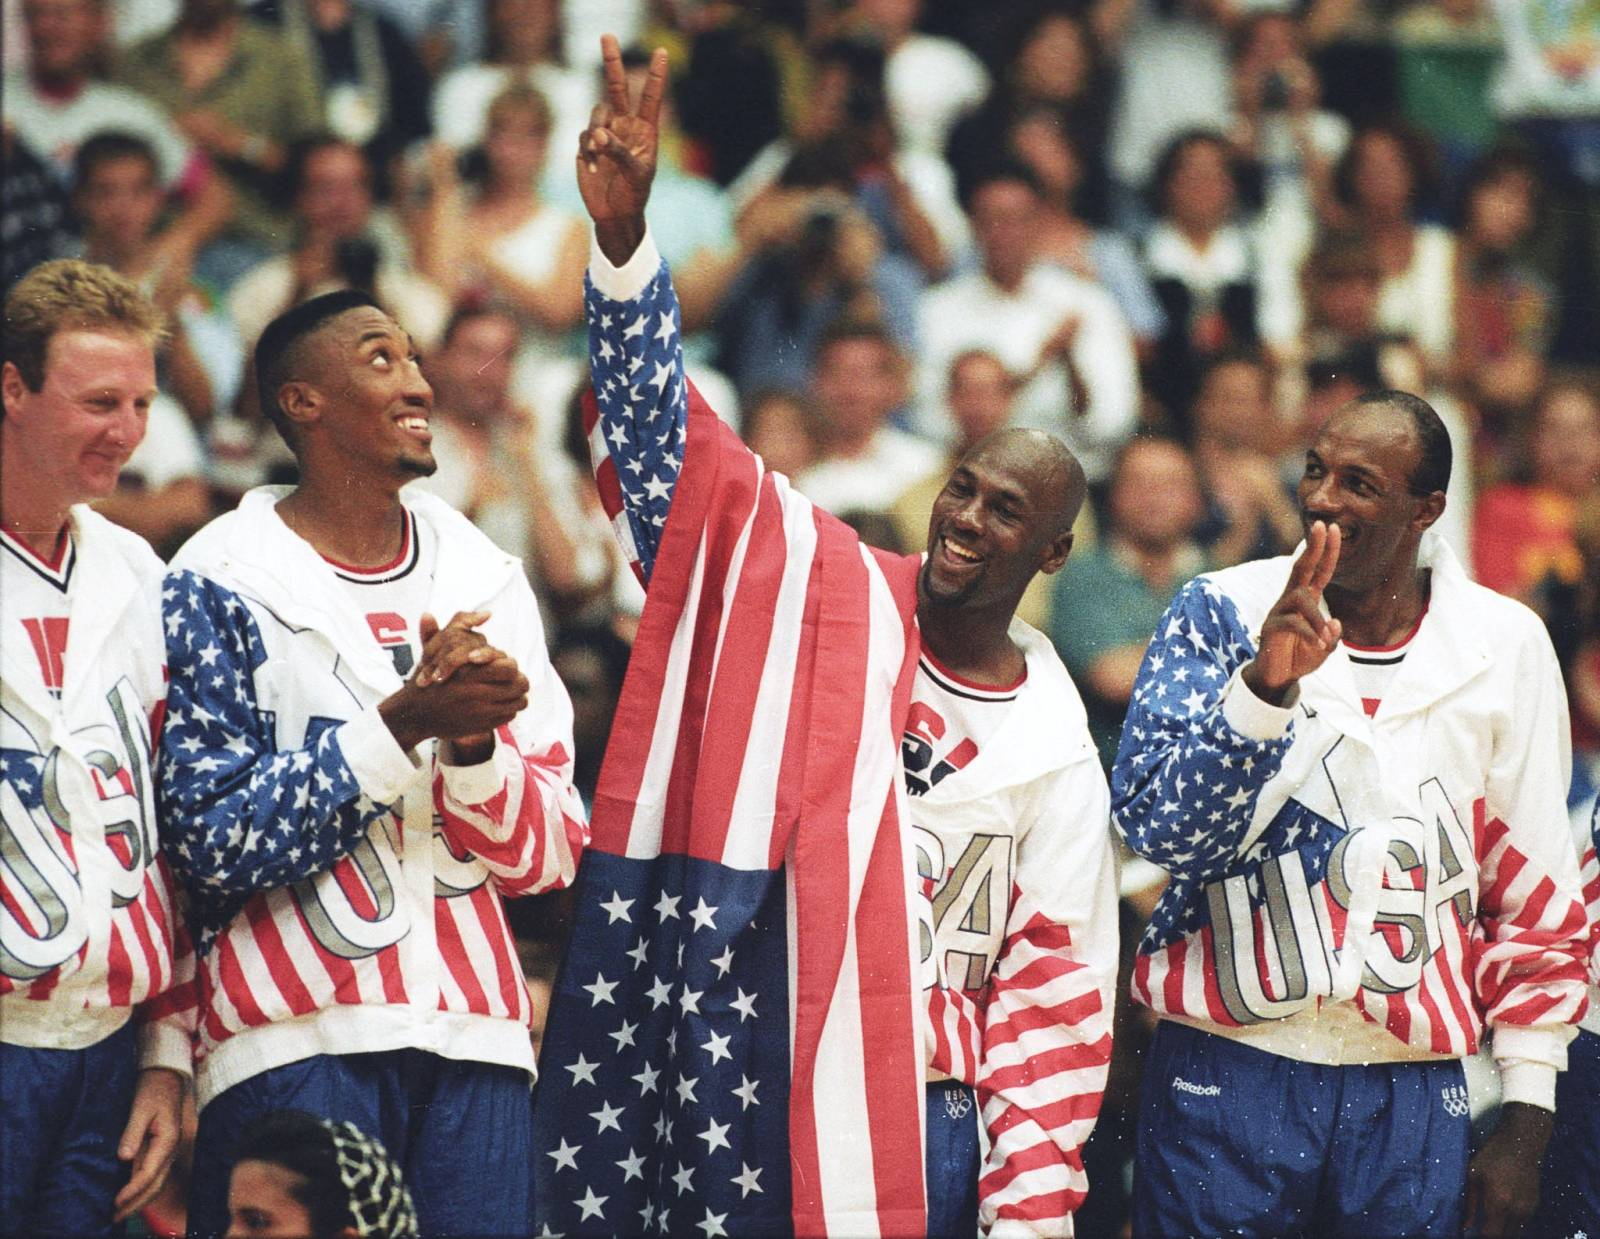 FILE PHOTO: U.S. basketball player Michael Jordan flashes a victory sign as he stands with team mates Larry Bird, Scottie Pippen and Clyde Drexler after winning the Olympic gold in Barcelona